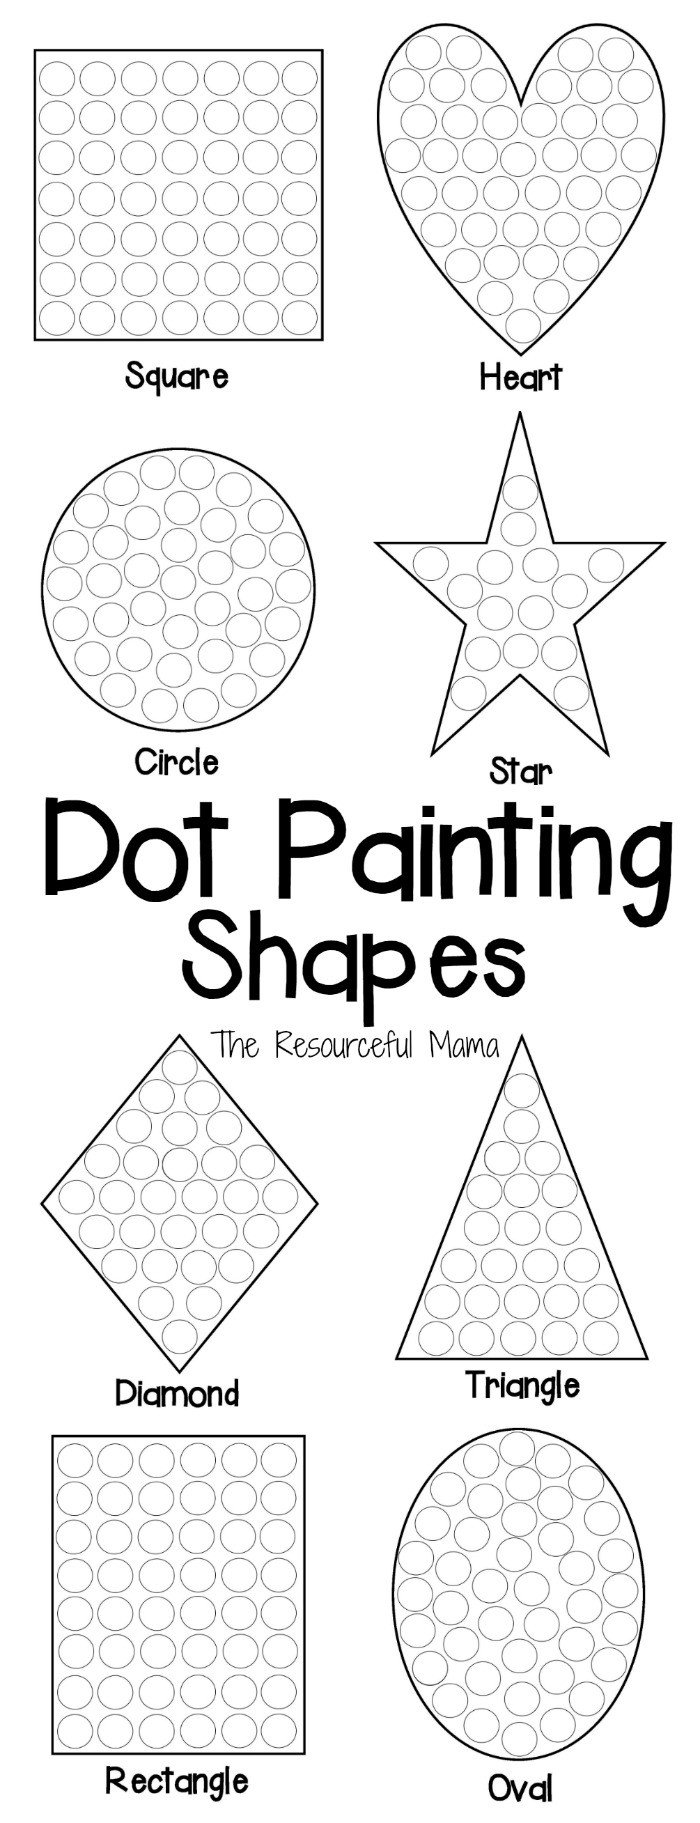 Dot Painting Shapes long collage